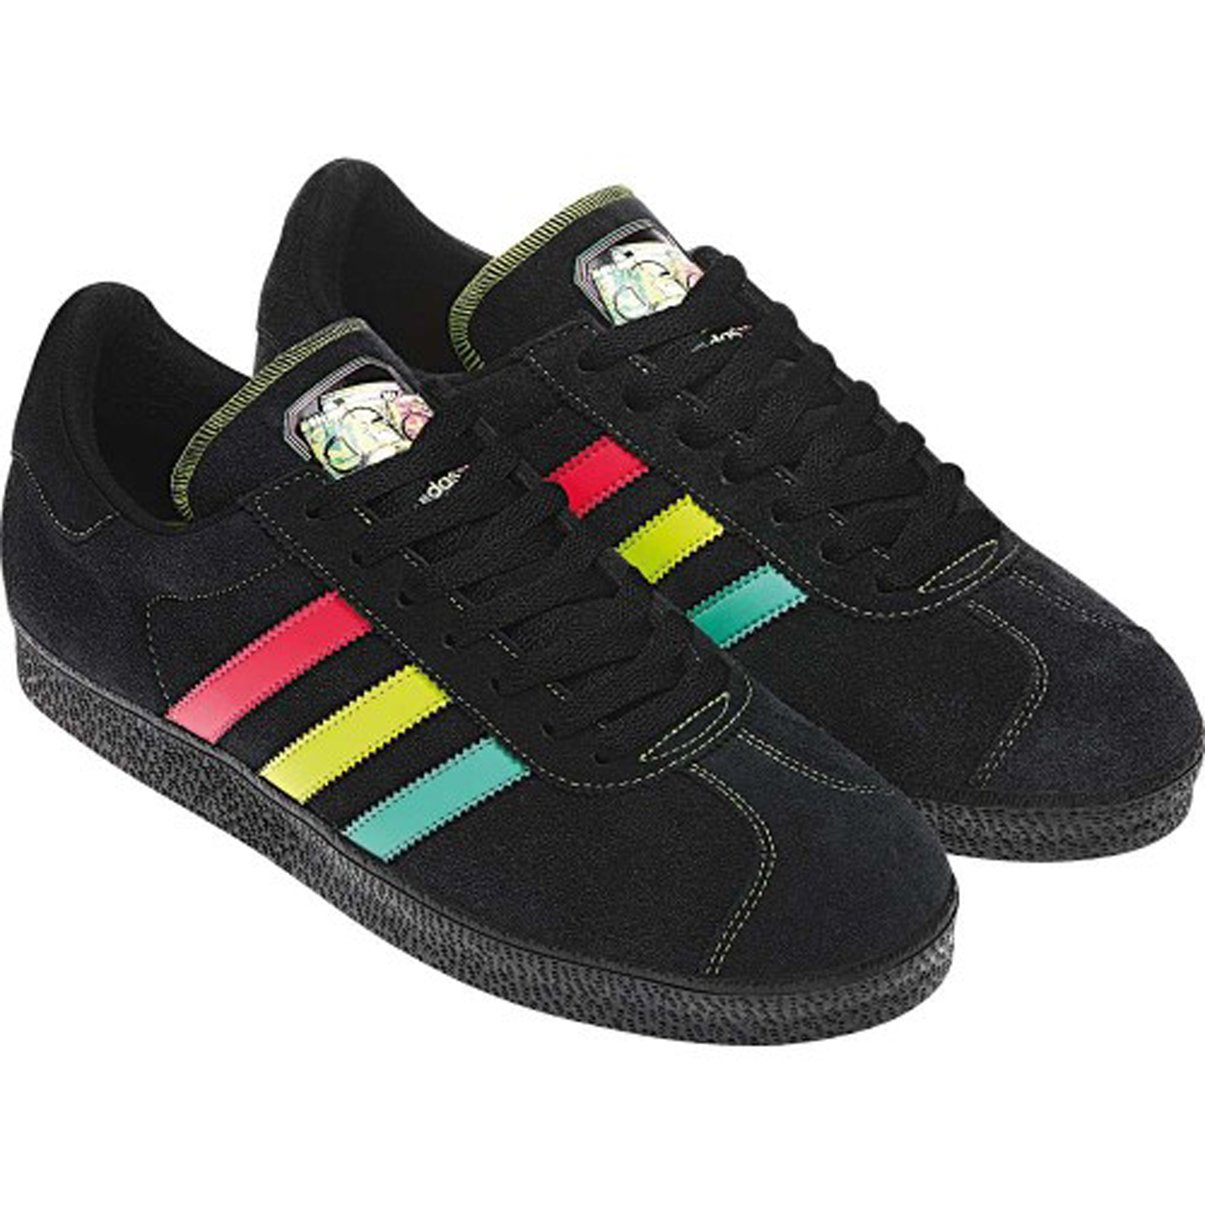 Adidas Originals Star Wars Gazelle 2 Boba Fett Black Rasta